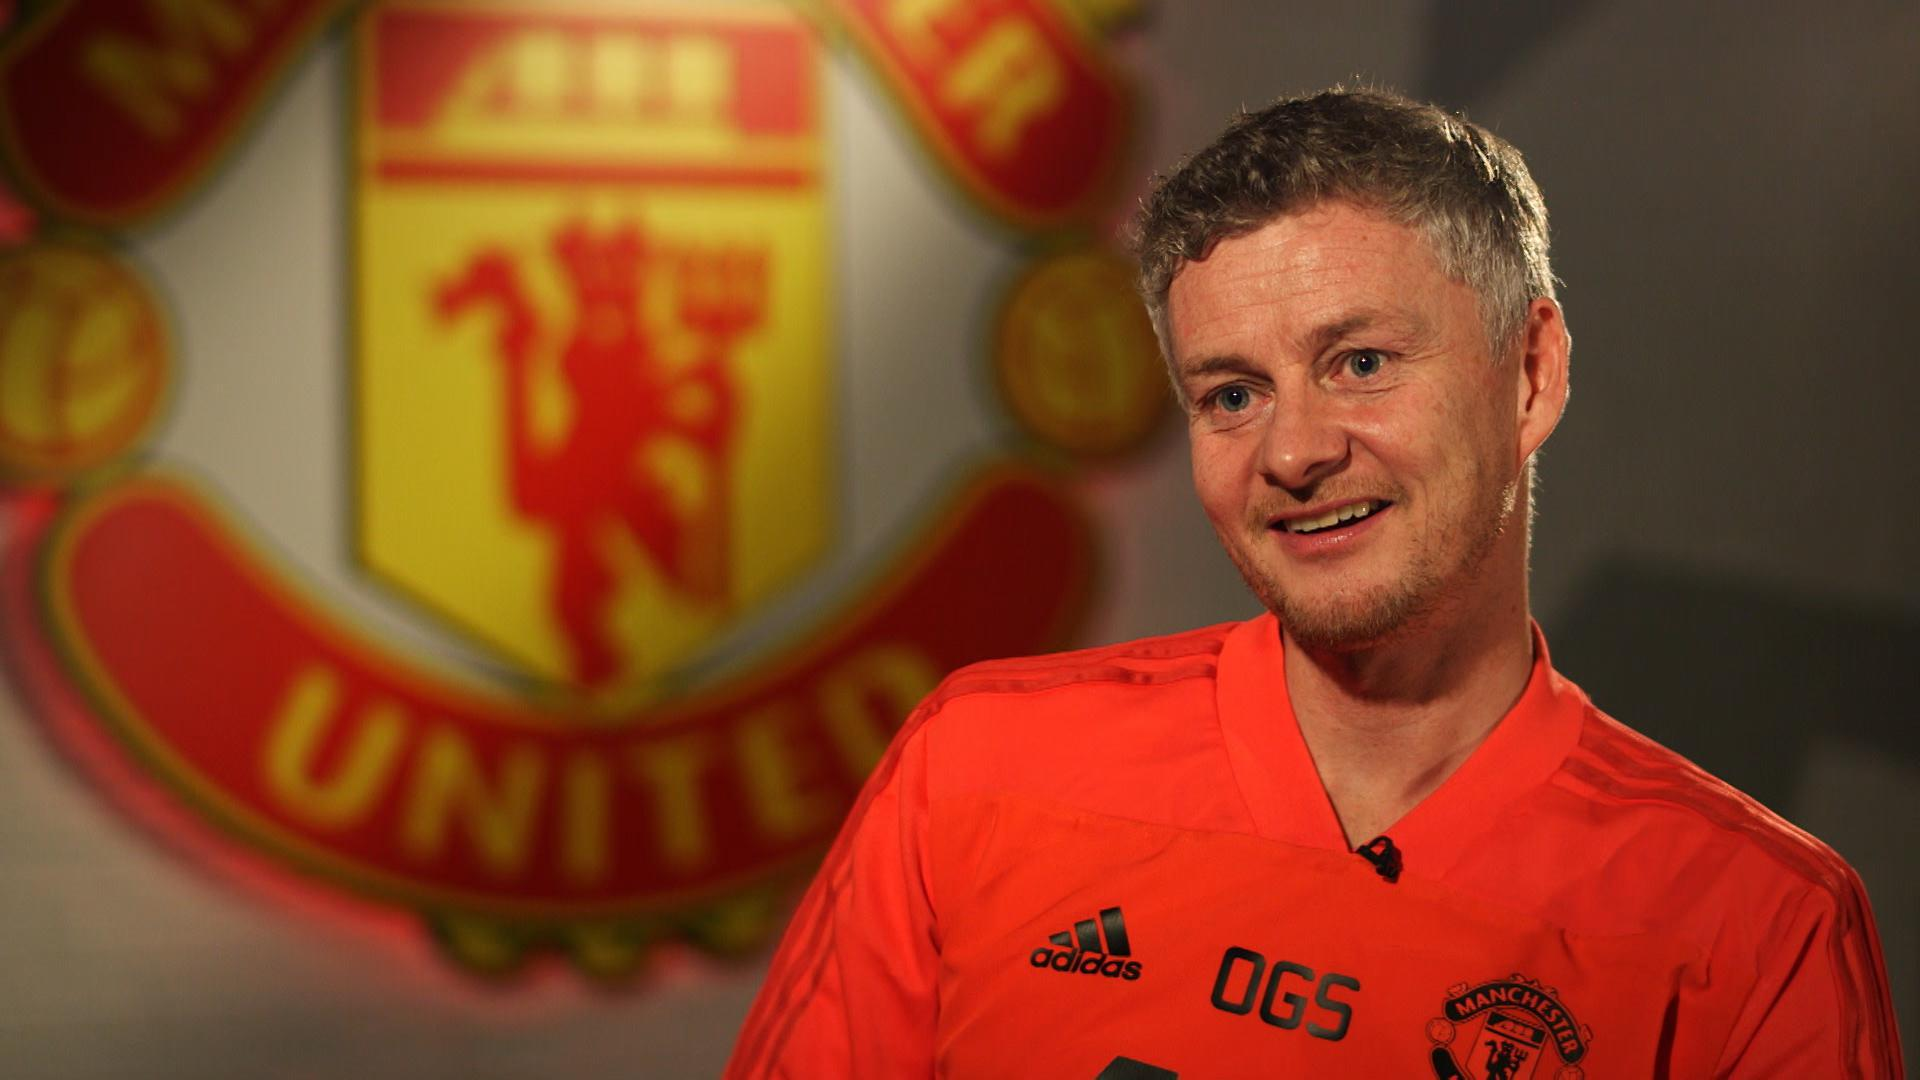 Ole Gunnar Solskjaer in his MUTV interview.